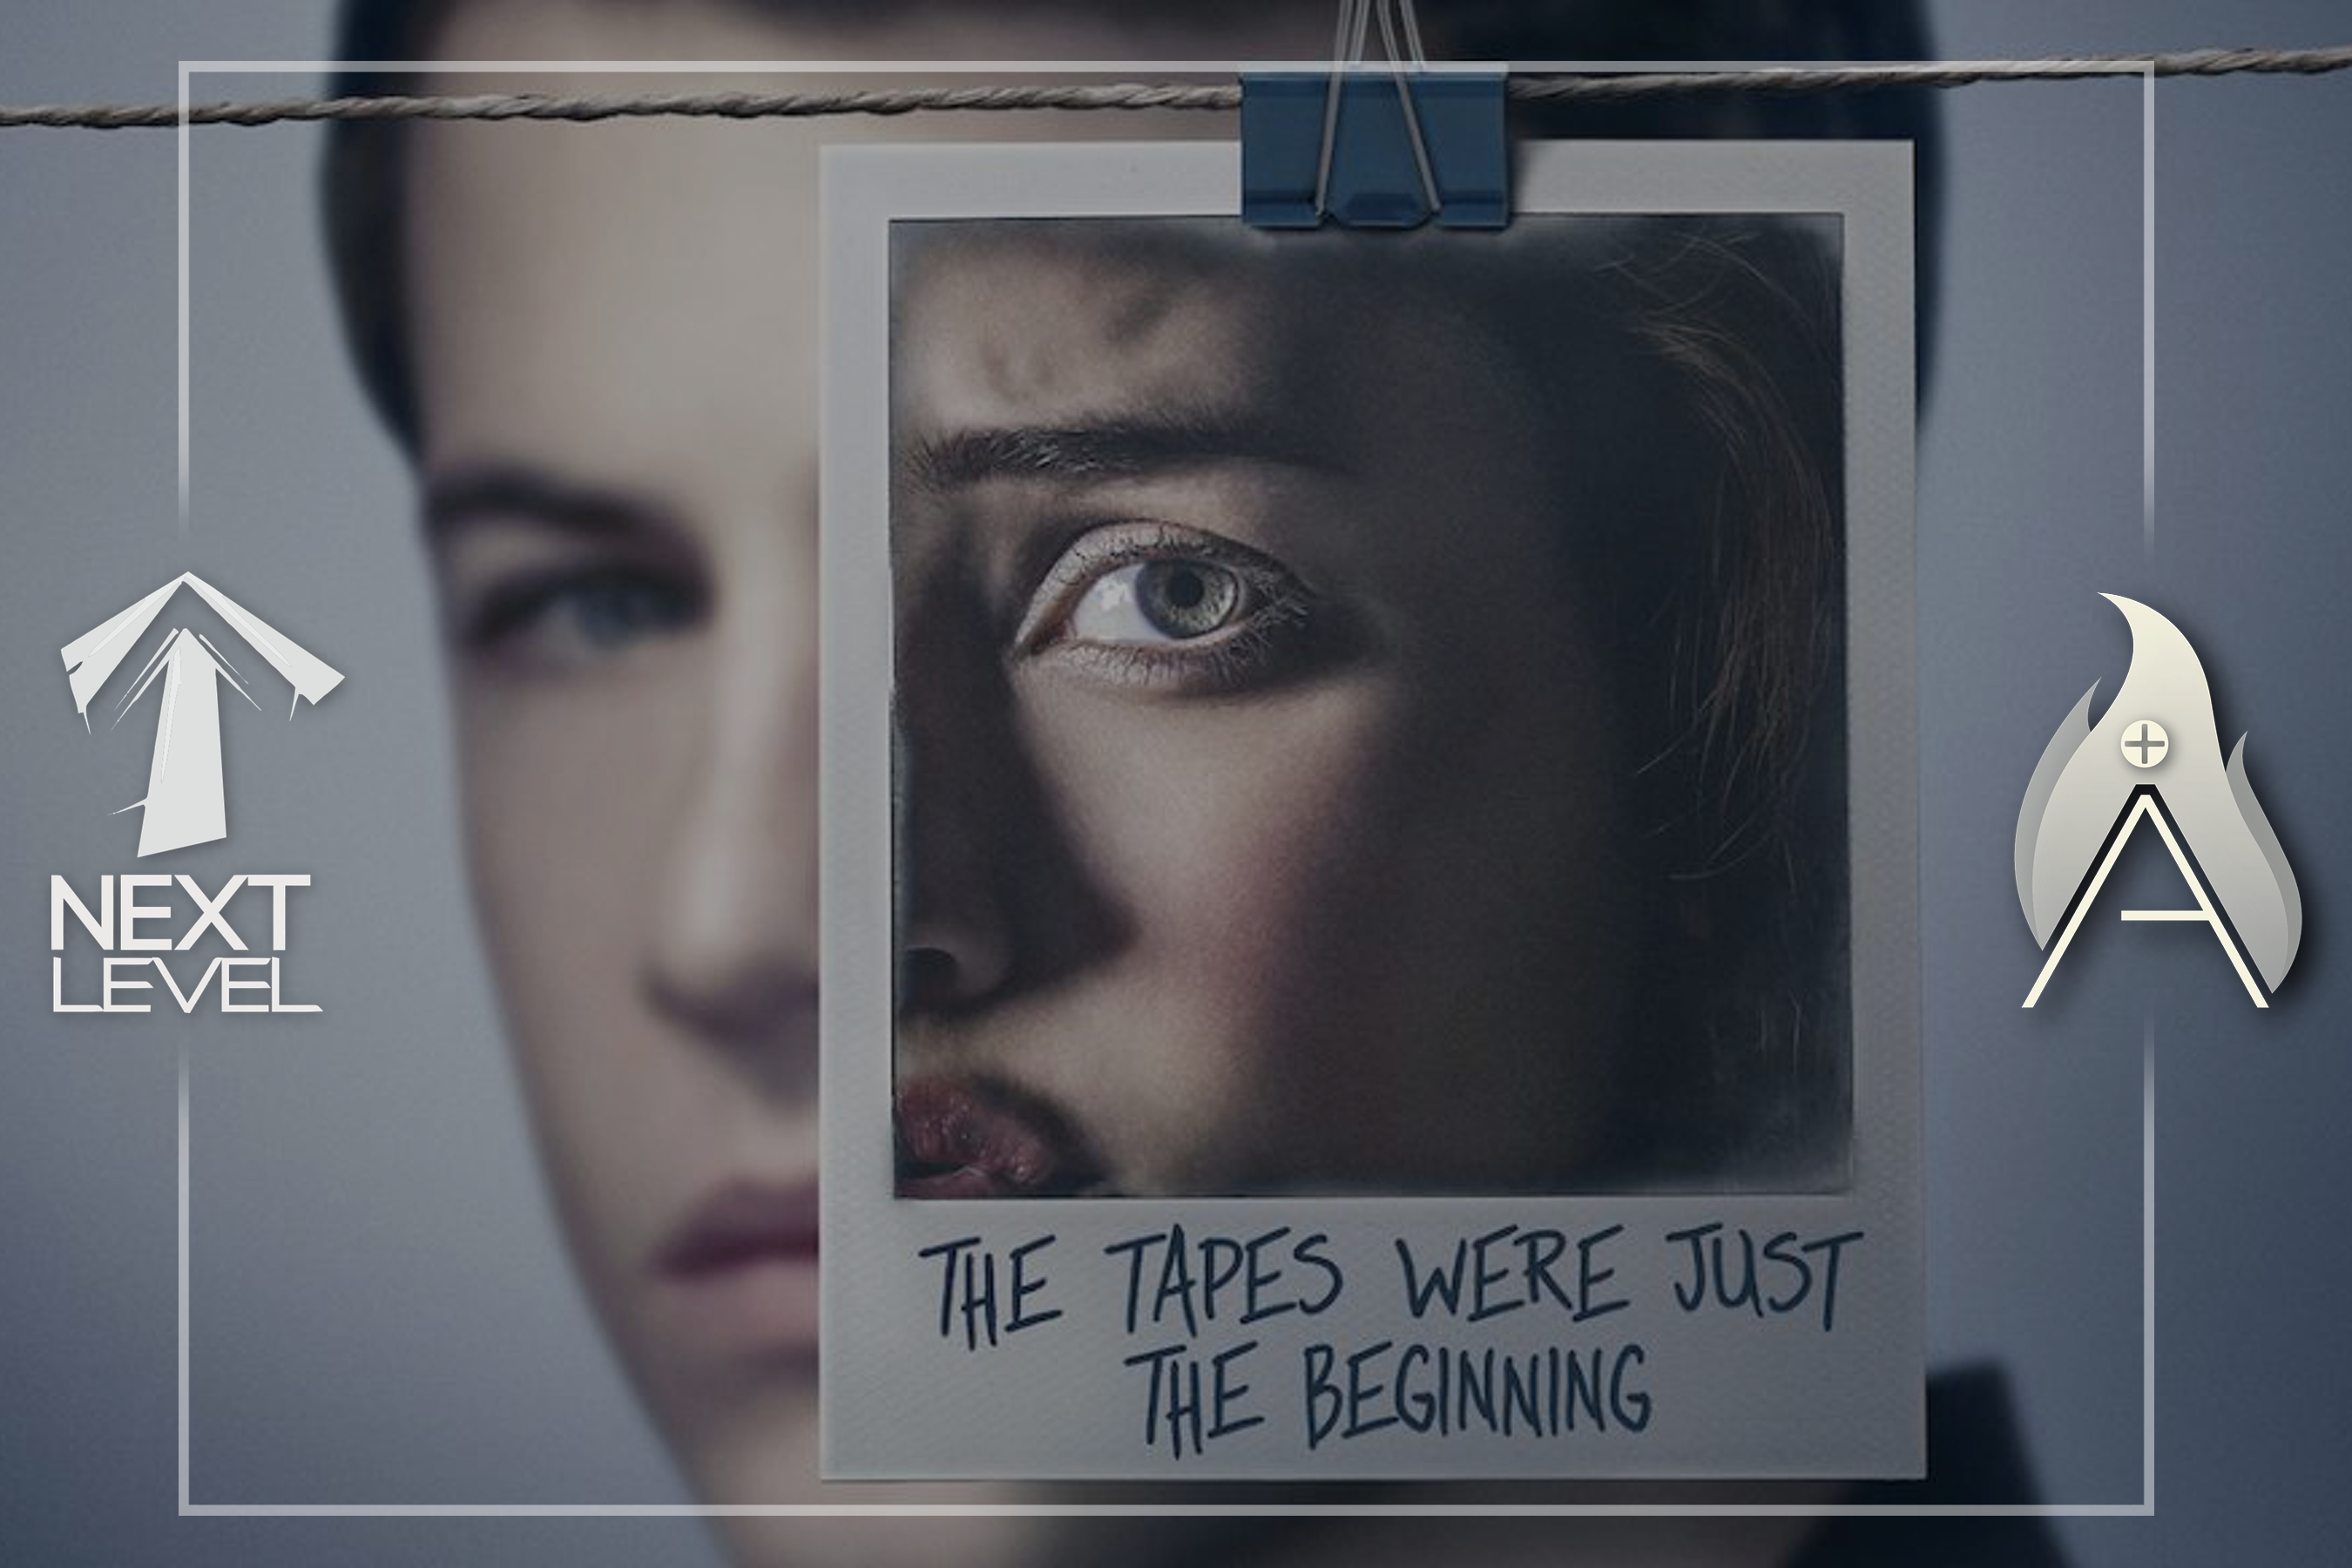 13 reasons why season two, parent guide, catholic, christian